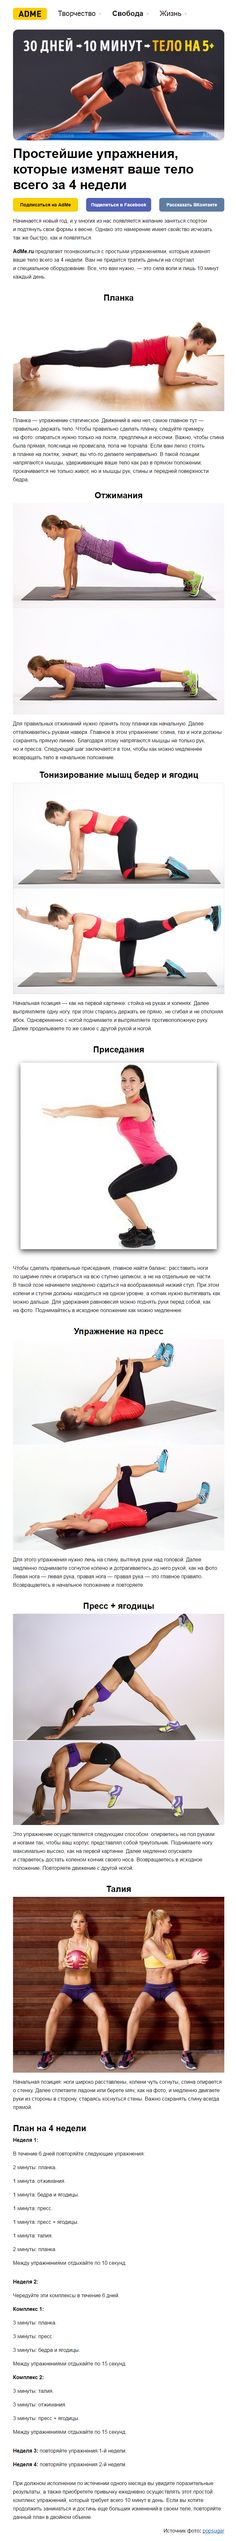 Упражнения, которые изменят мое тело за 4 недели Belly Pooch Workout, Yoga Fitness, Health Fitness, Sport Diet, Body Training, Ideal Body, Keep Fit, Stay In Shape, 30 Day Challenge